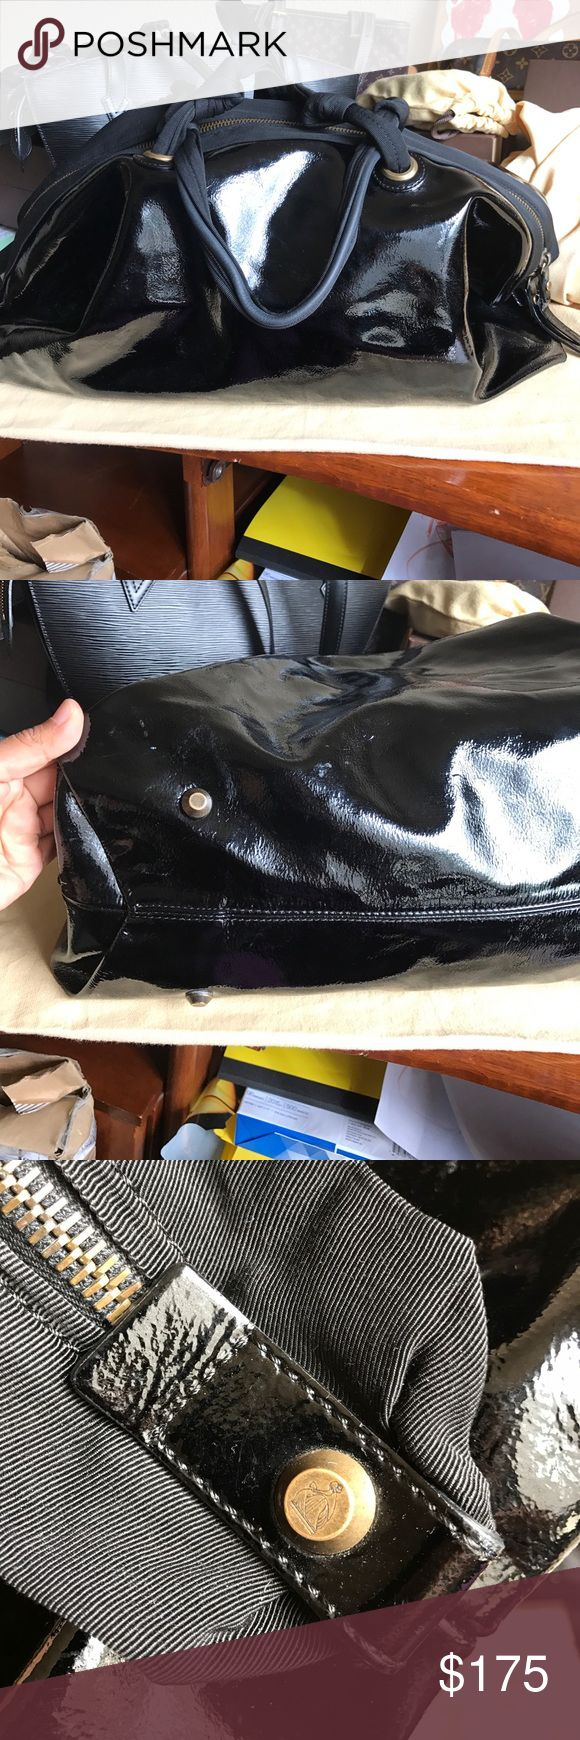 LANVIN patent leather Bowling bag. Authentic 🖤 Gorgeous bag. Selling cheap because it has a defect. 1 of the side studs came off. The bag can still be carried but is missing the stud that attached that one side and gives it its bowling bag shape. Very clean I side. Patent leather shows some stains and light scratches. Authentic LANVIN and great price given its condition. ❌NO BOX, No dustbag❌ Lanvin Bags Shoulder Bags